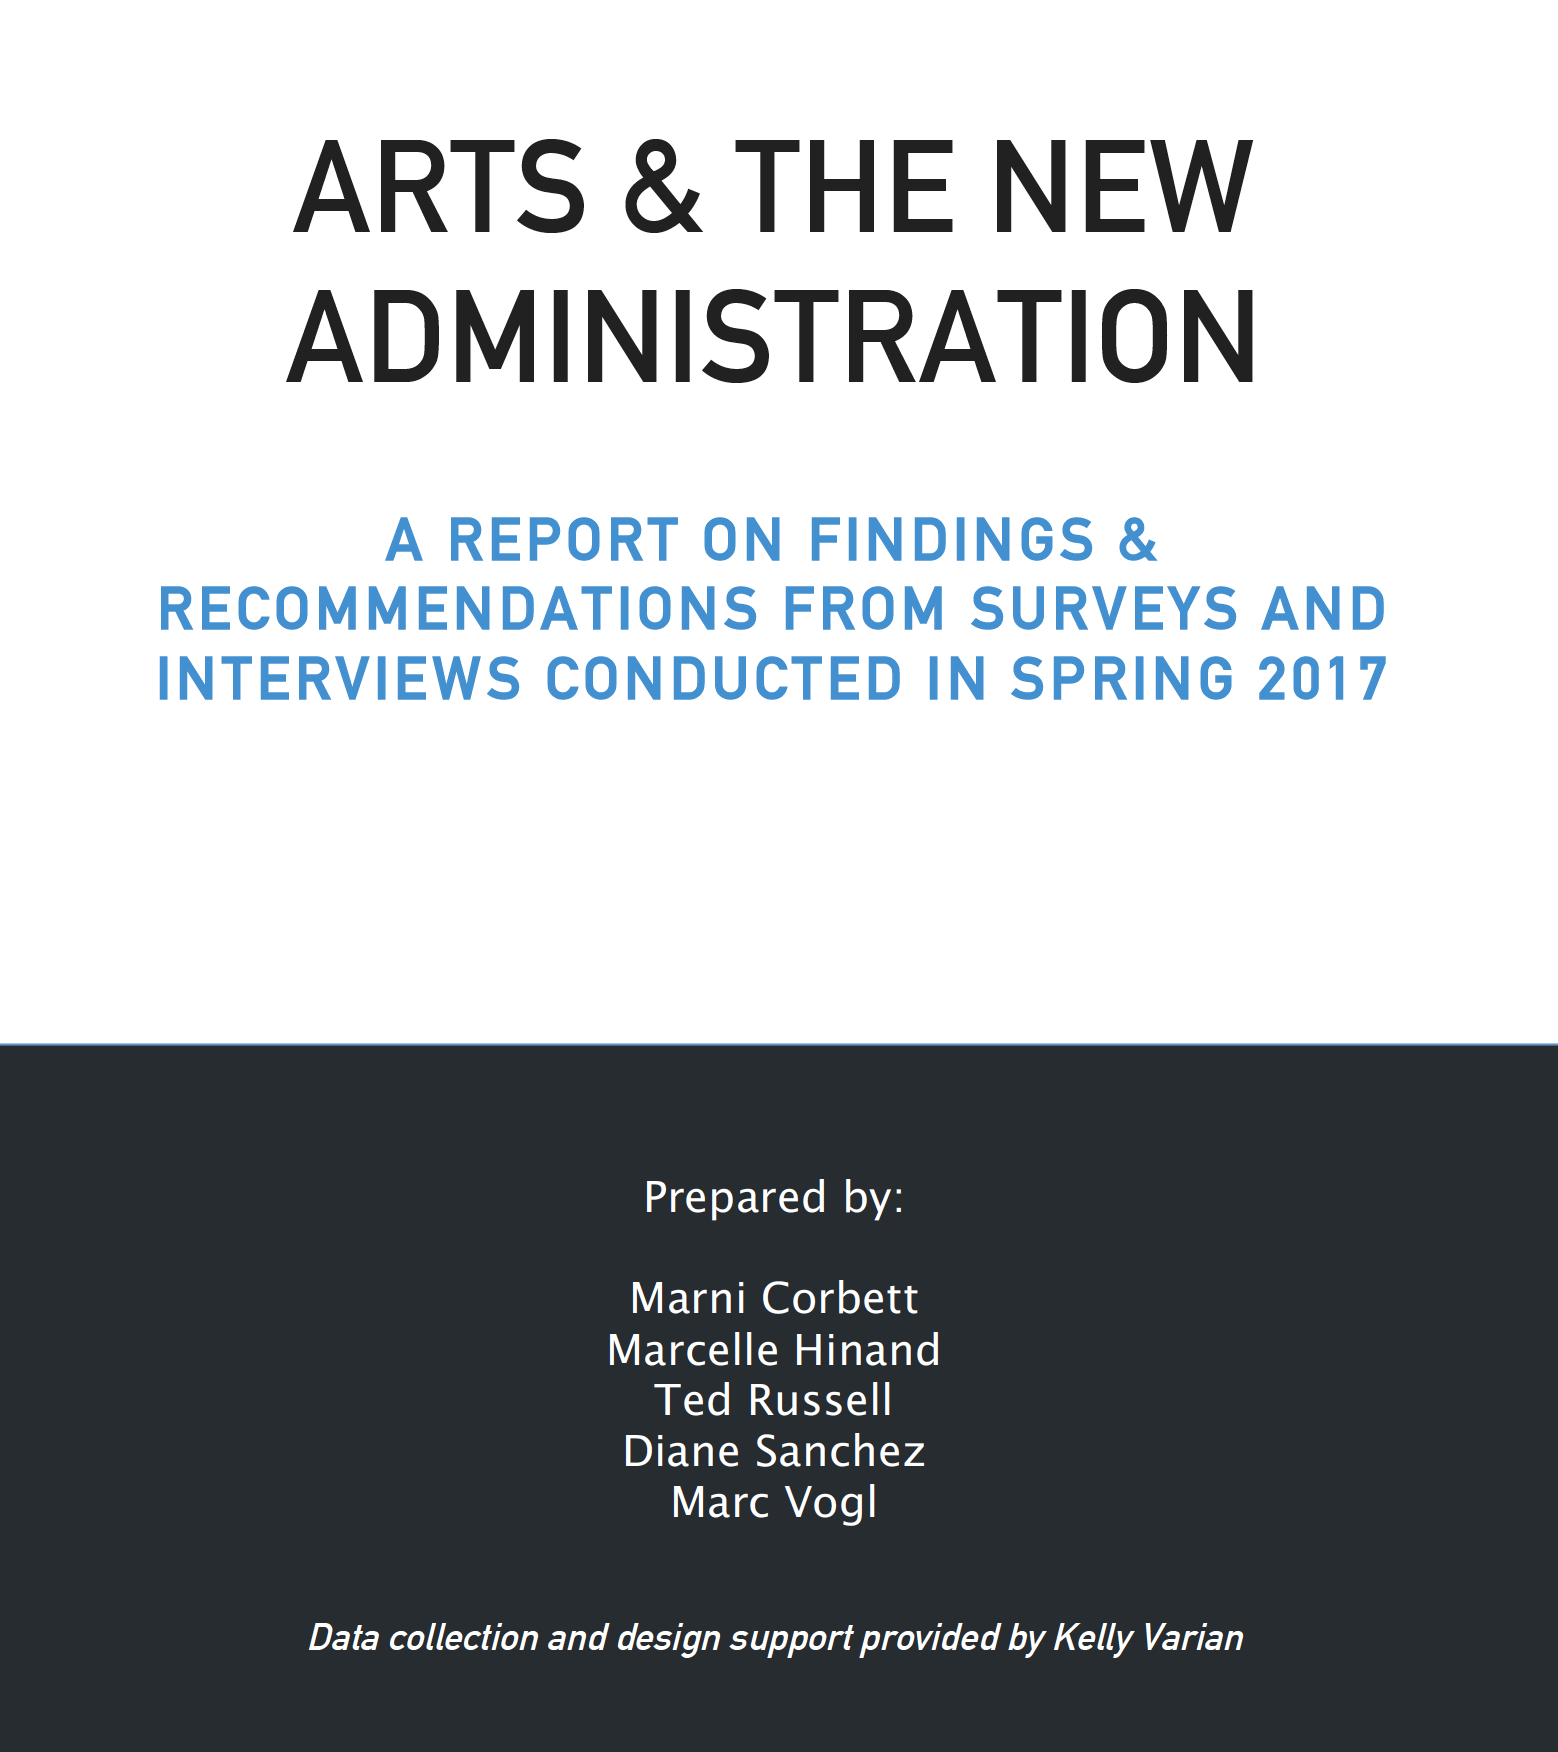 Arts and the New Admin Cover Image